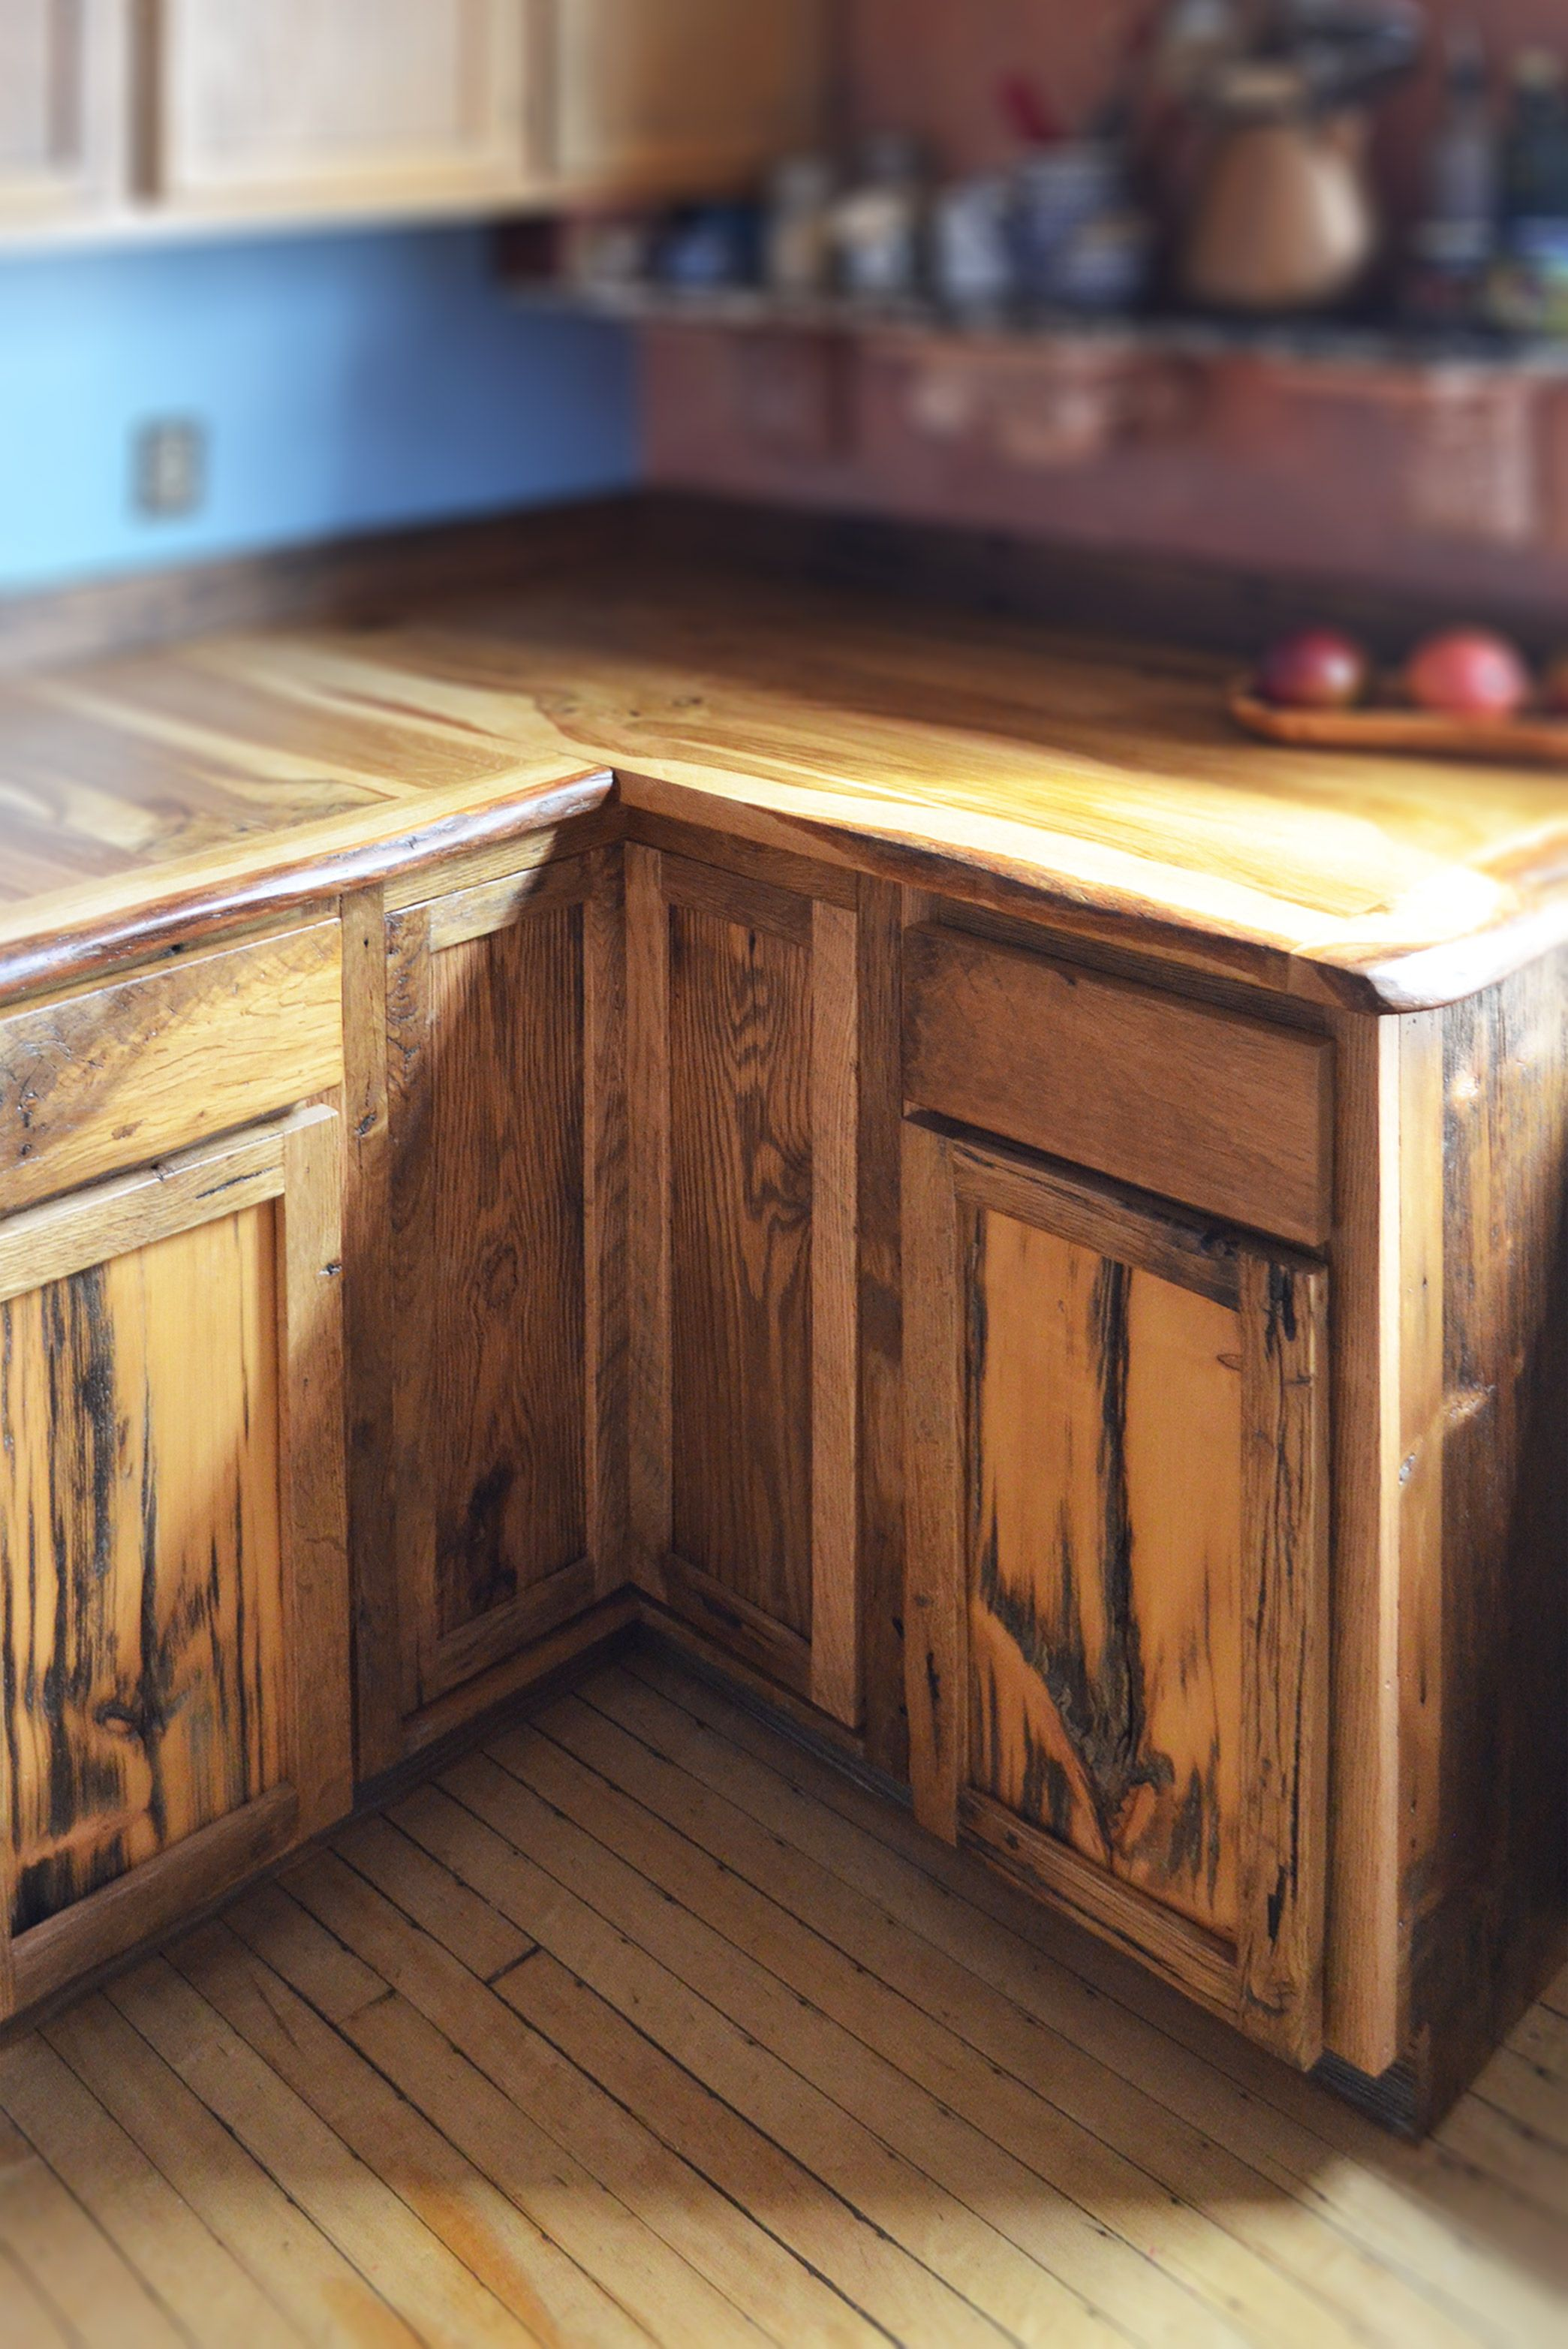 Rustic Kitchen Cabinets Abodeacious In 2020 Rustic Kitchen Cabinets Refacing Kitchen Cabinets New Kitchen Cabinets